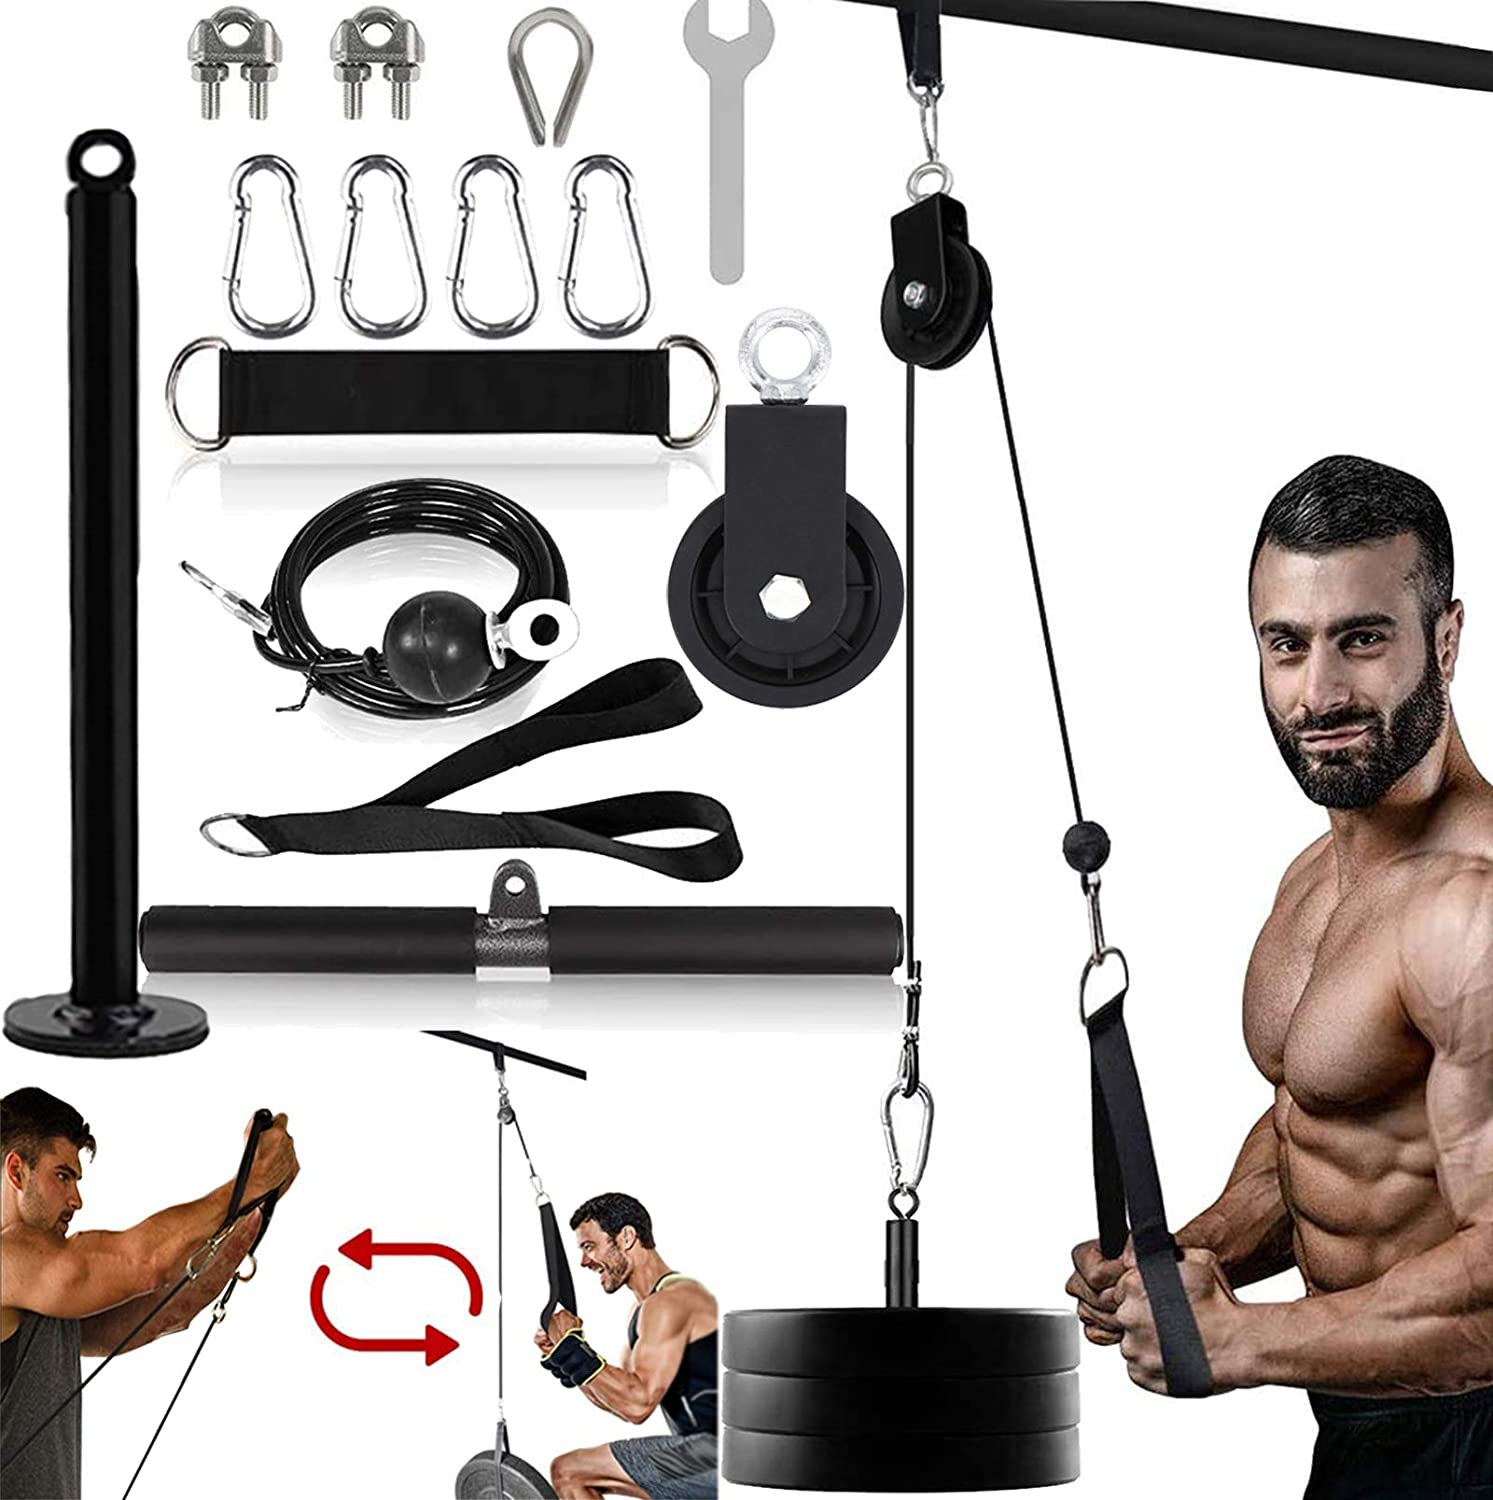 Favuit LAT Pulley System Professional Home Gym Pull Down Machine Equipment with Upgraded Loading Pin for LAT Pull Downs, Biceps Curl, Forearm, Shoulder